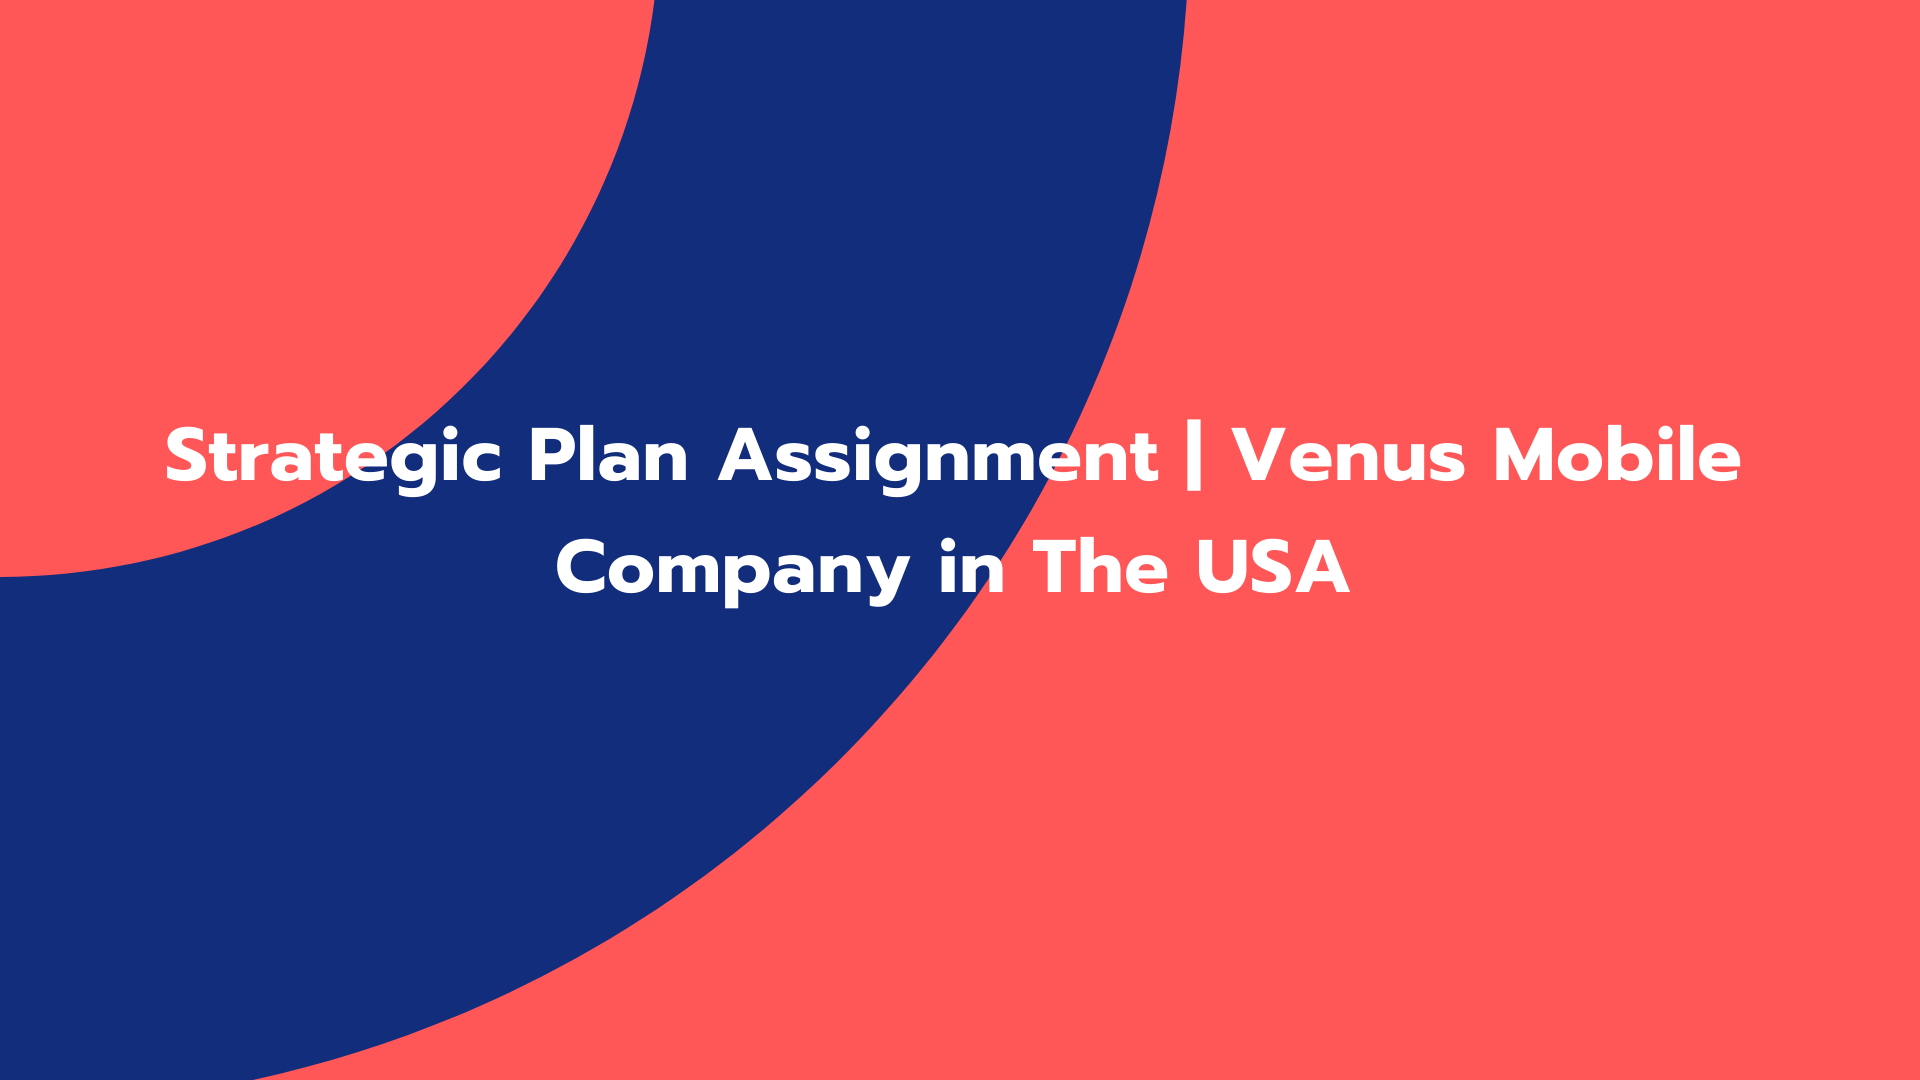 Strategic Plan Assignment | Venus Mobile Company in The USA